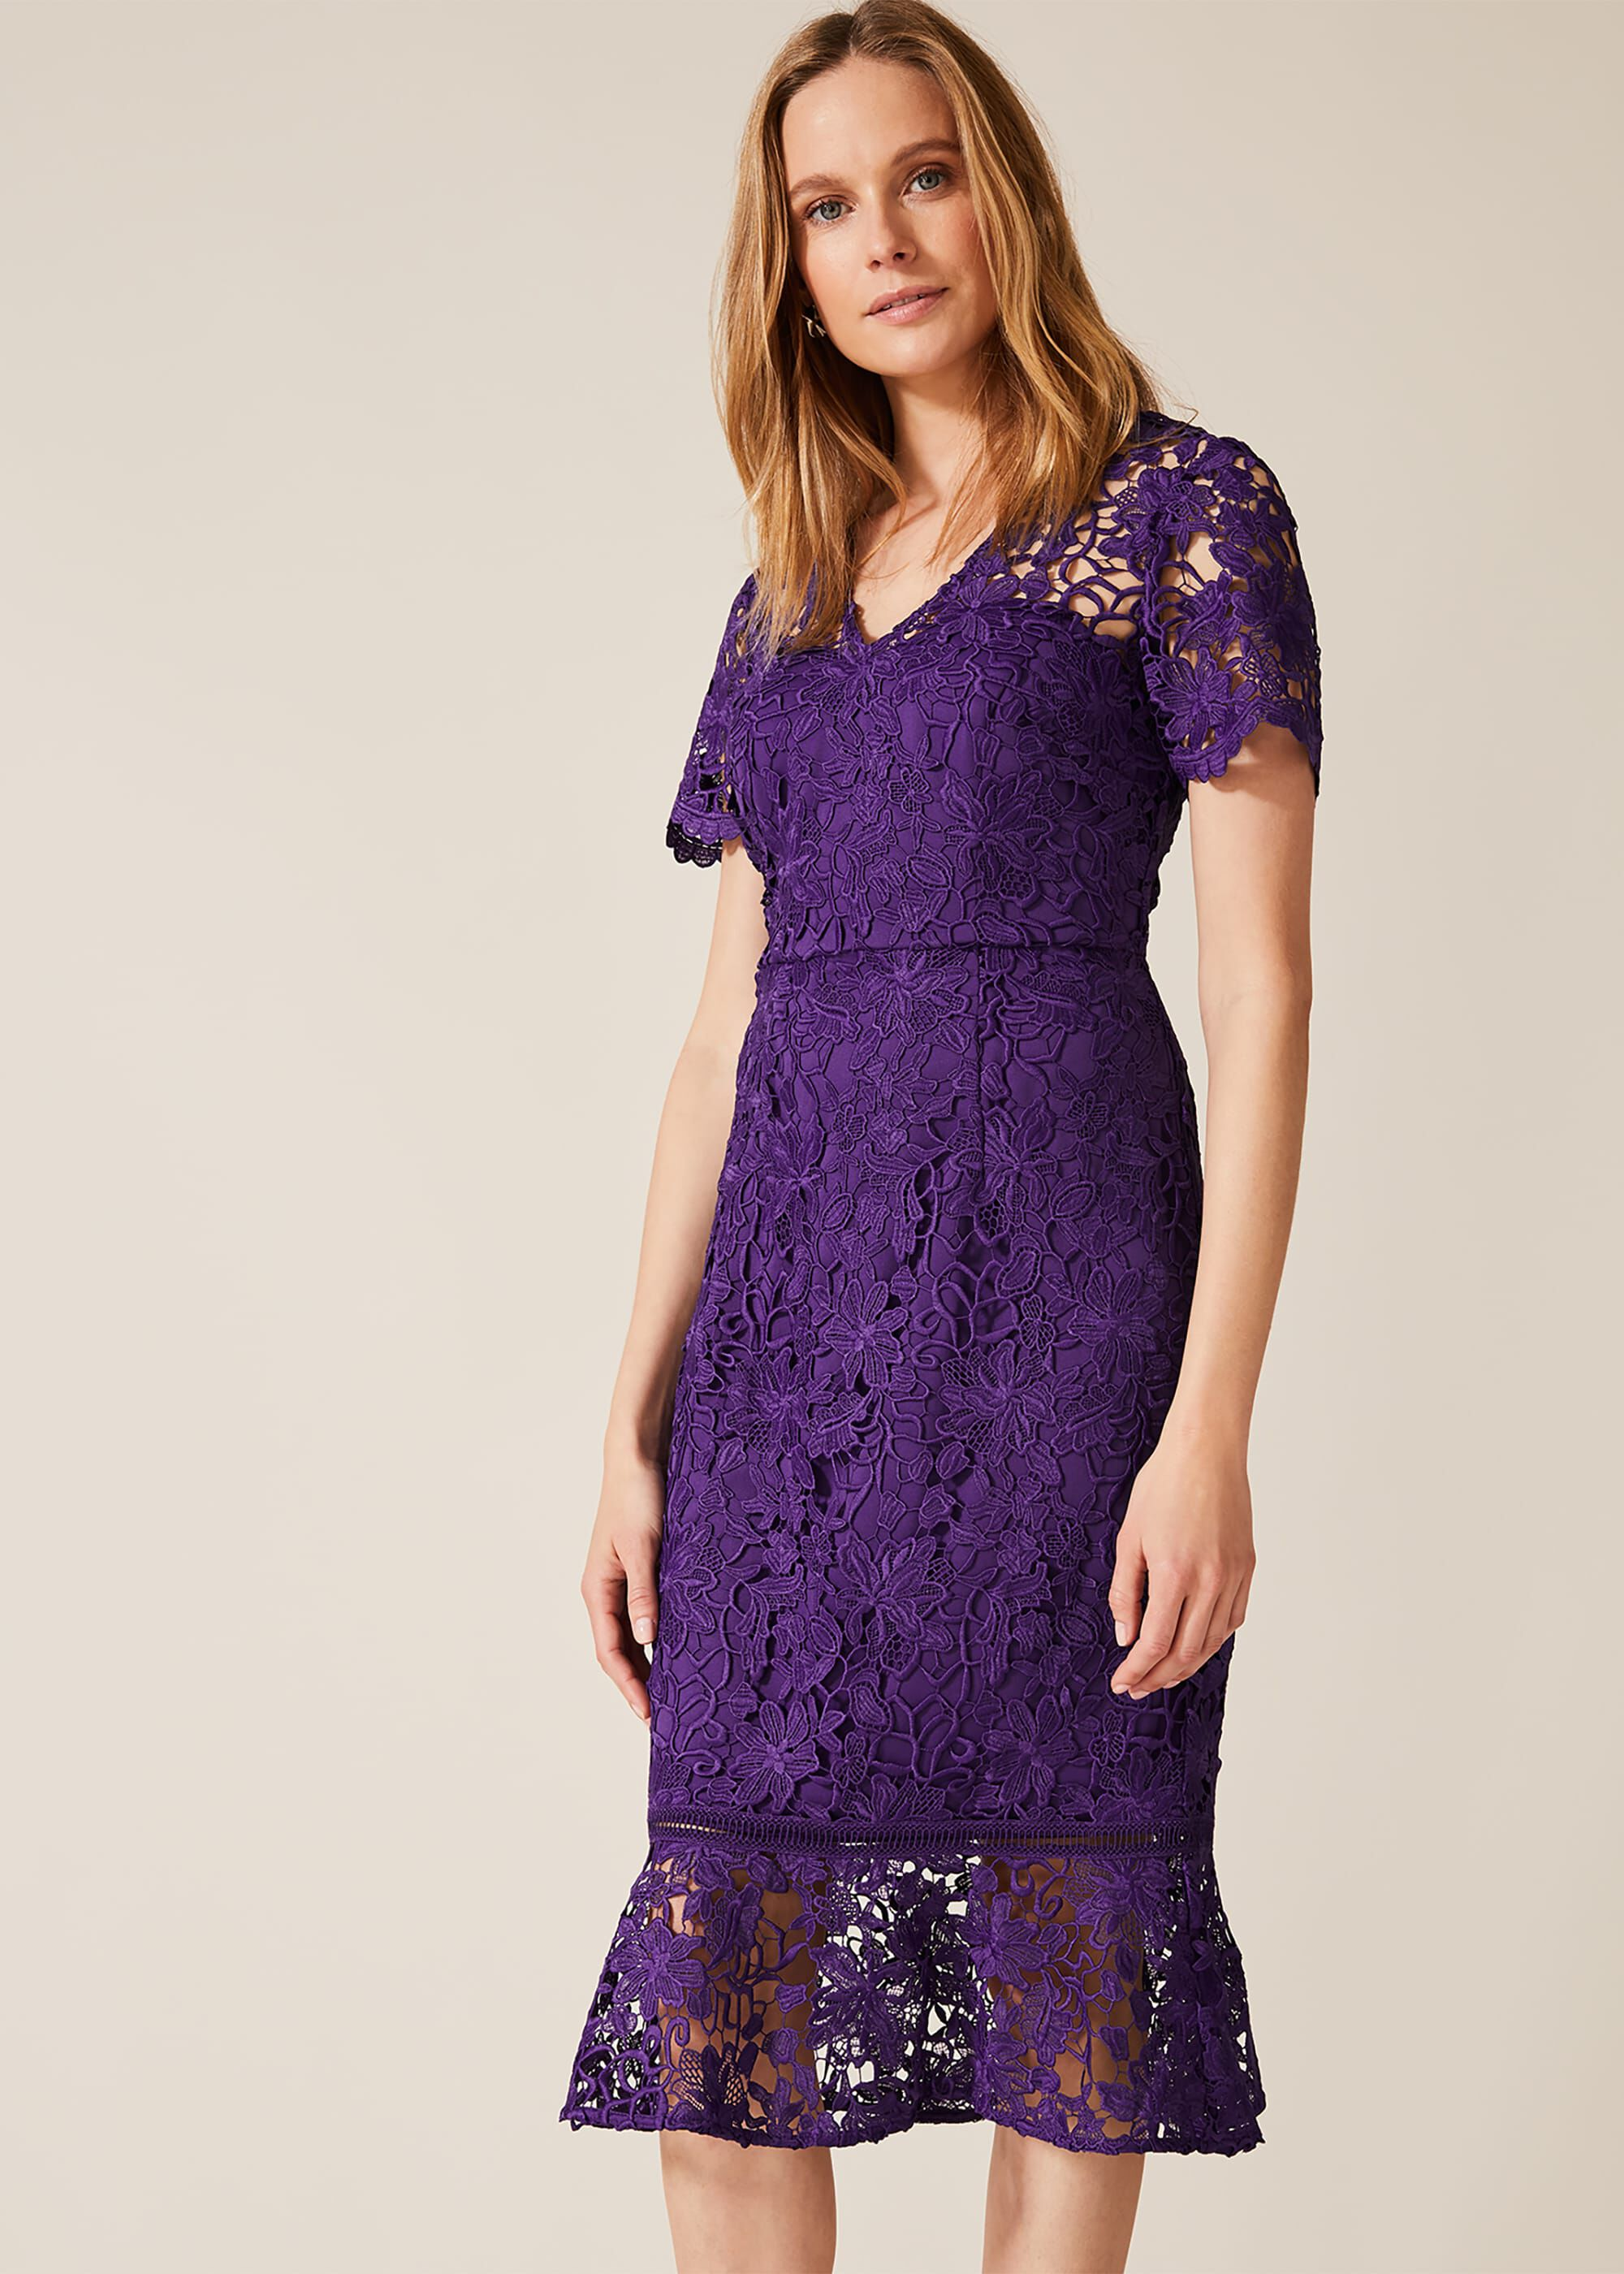 Phase Eight Daria Guipire Lace Dress, Purple, Default, Occasion Dress